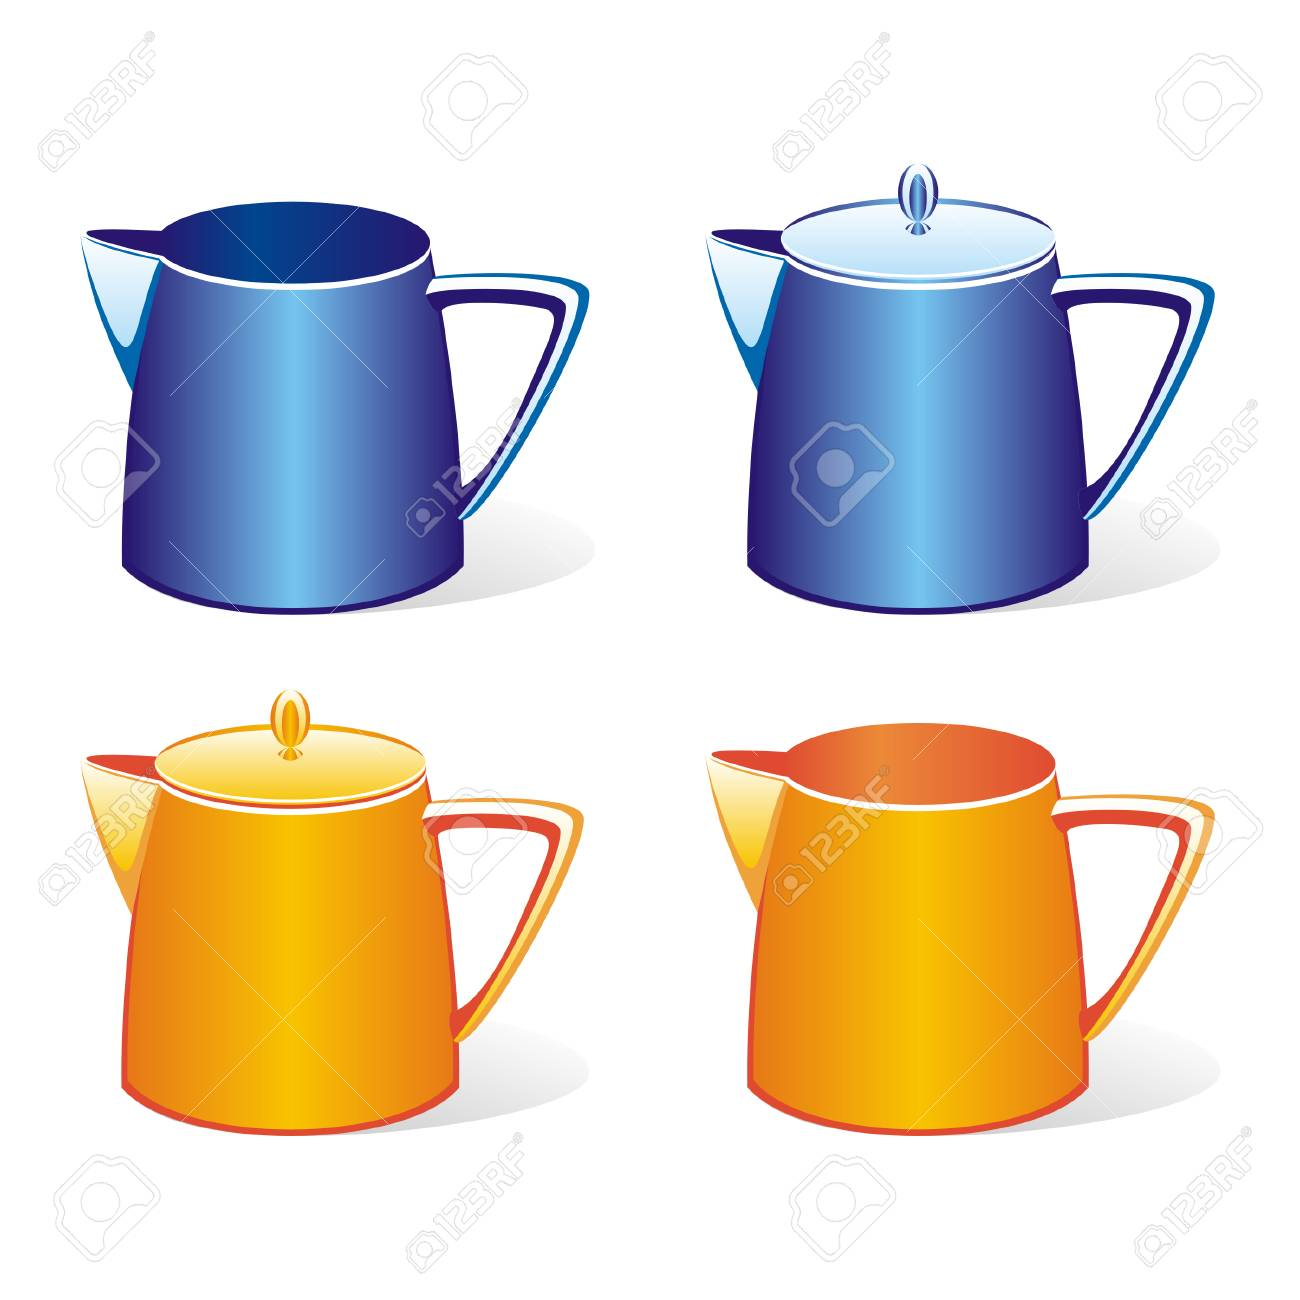 Vector illustration of isolated colored milk jugs set Stock Vector - 4302650